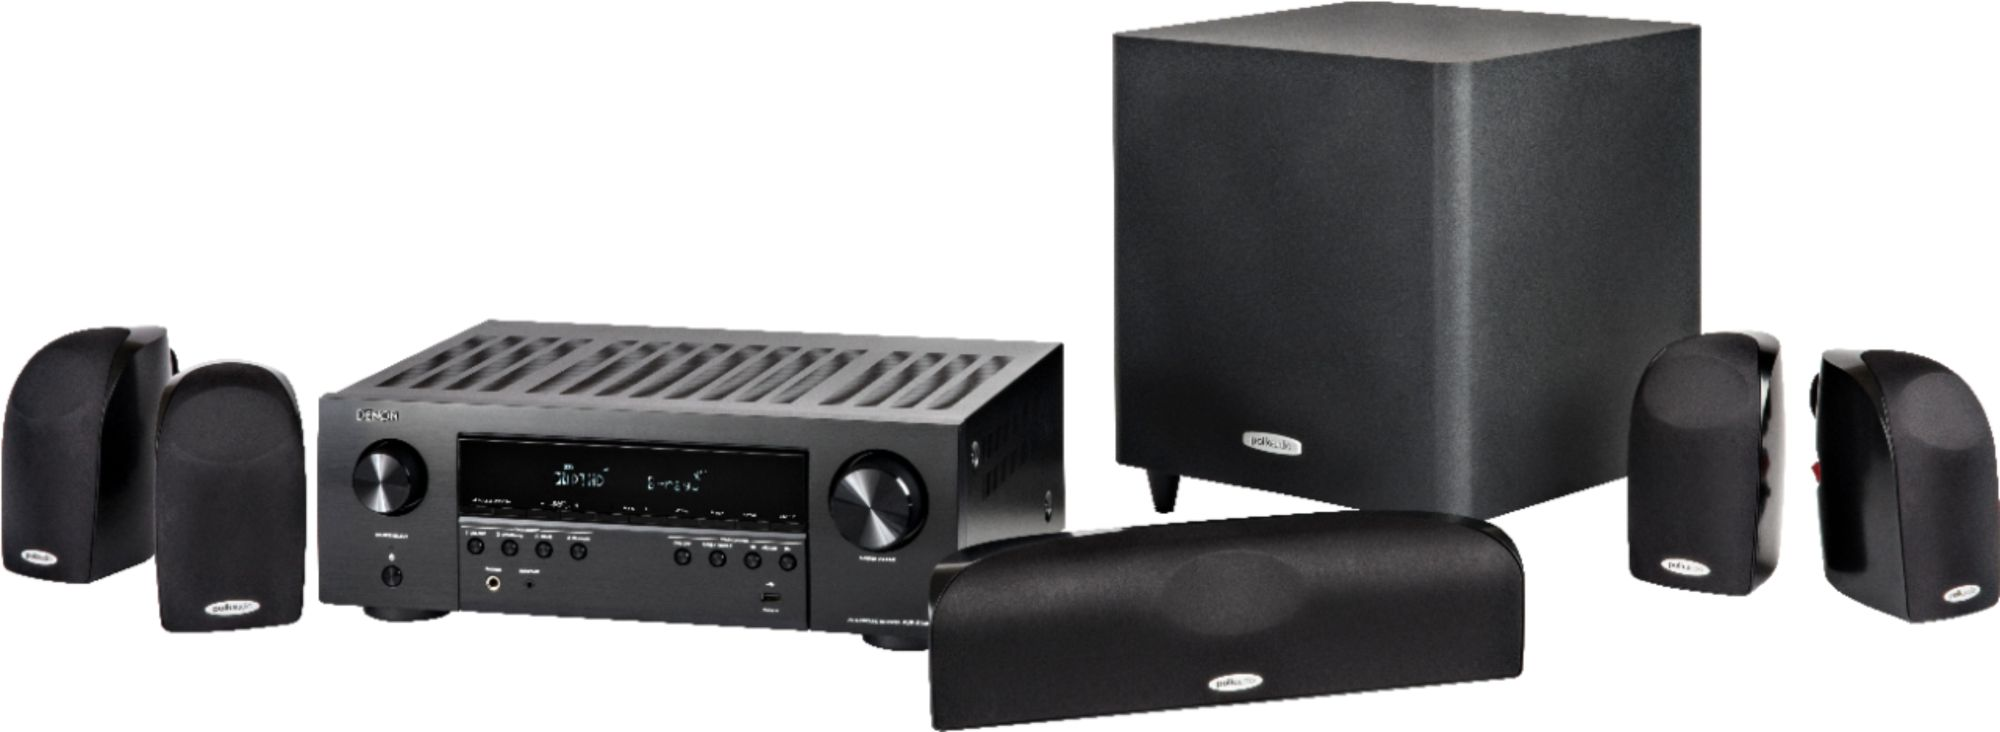 hight resolution of polk audio blackstone tl1600 and denon avr s540bt home theater package 5 1 ch home theater speaker system black tl1600 avrs540bt system best buy